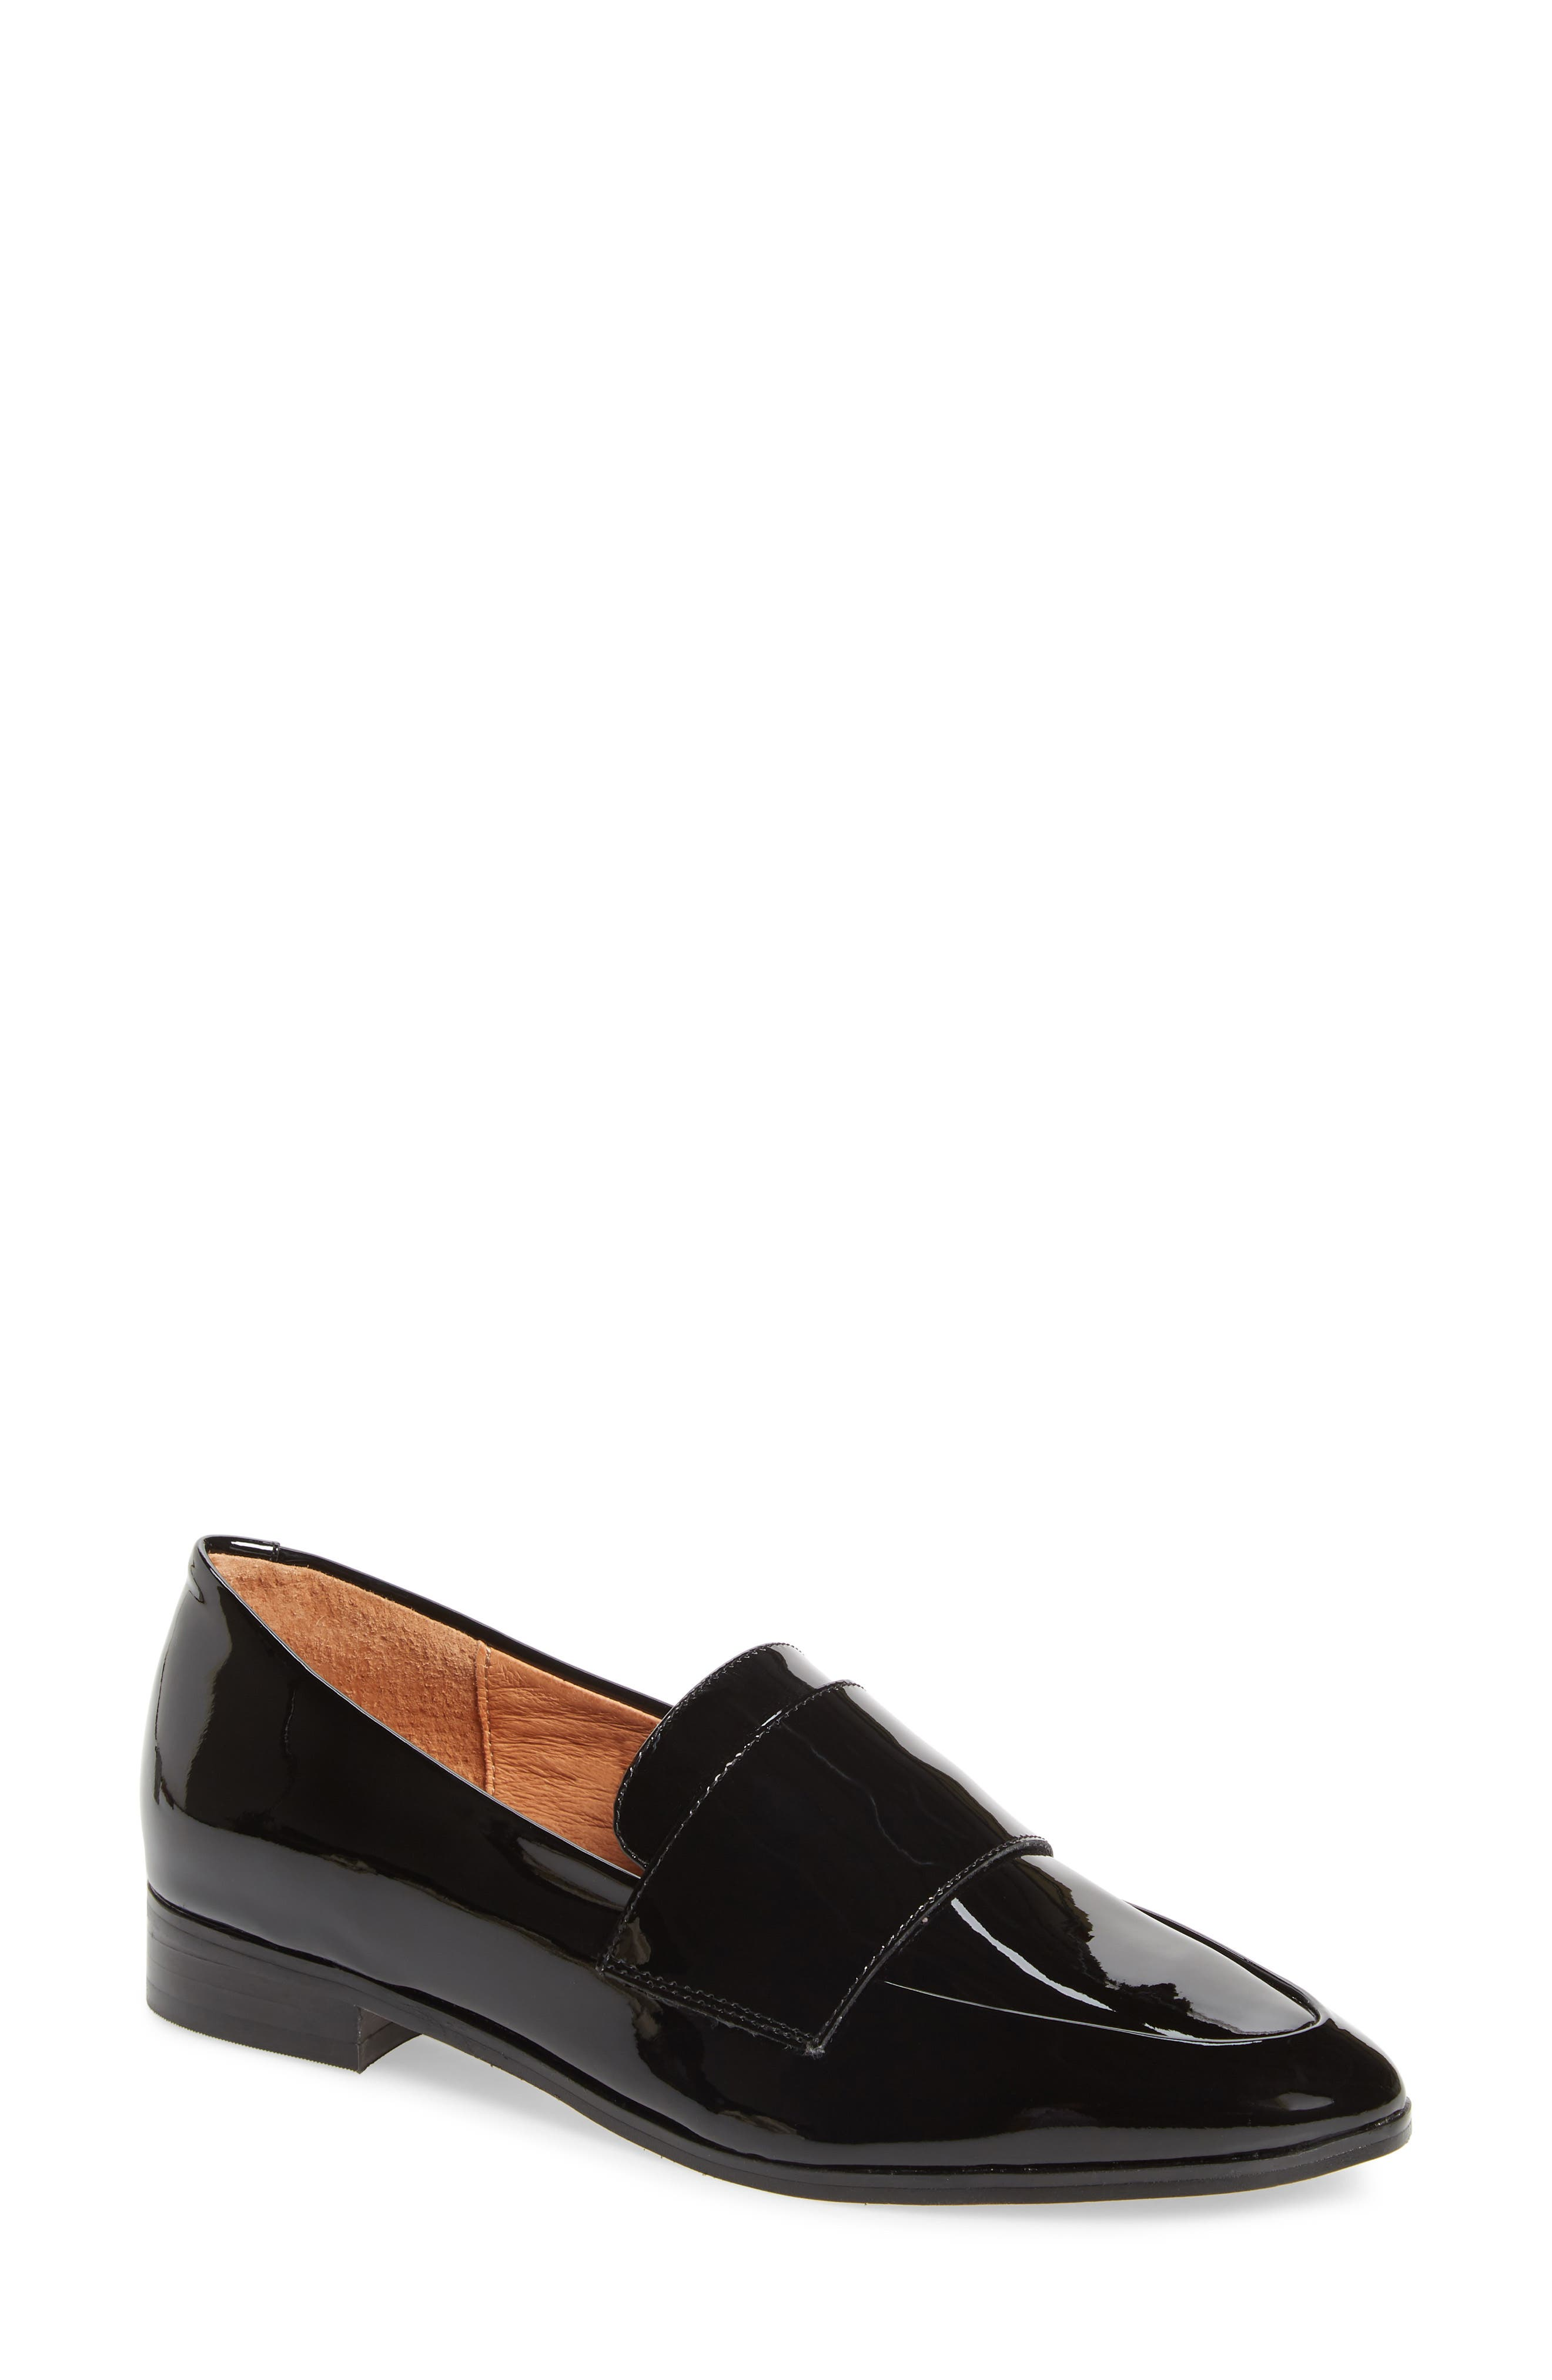 HALOGEN<SUP>®</SUP>, Emilia Loafer, Main thumbnail 1, color, BLACK PATENT LEATHER